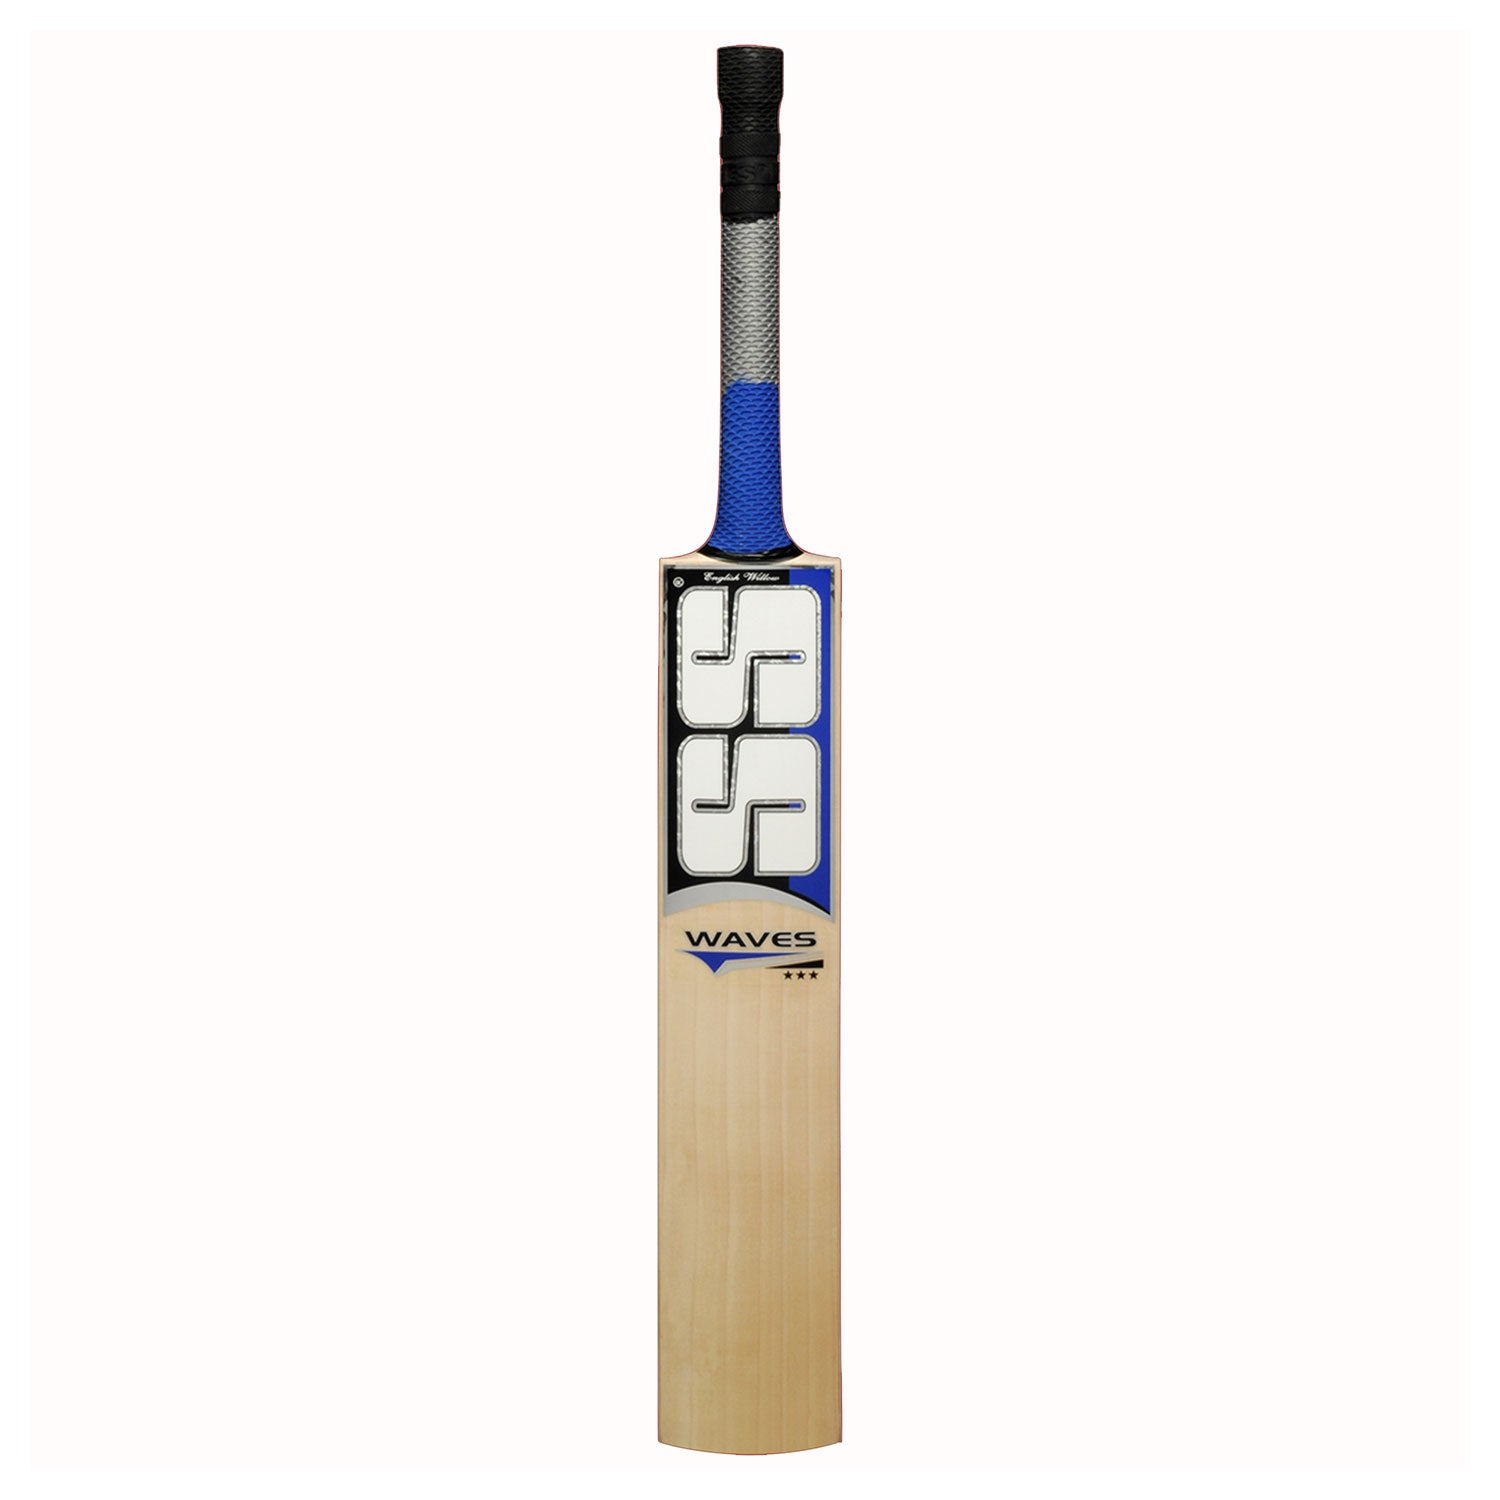 SS Waves English Willow Cricket Bat Standard Size